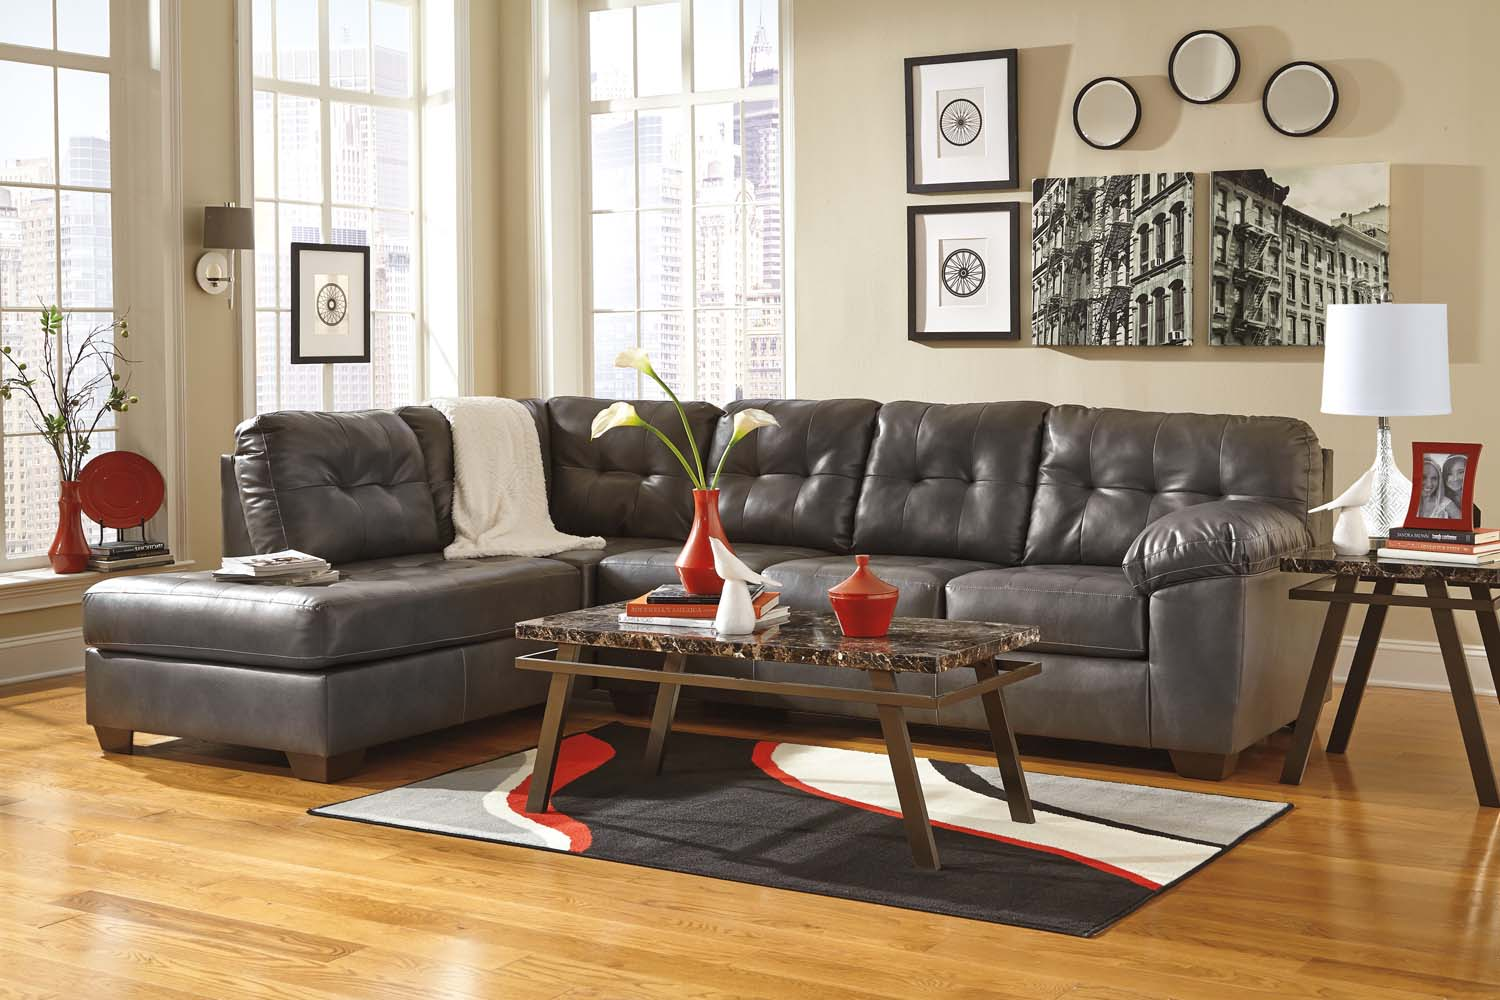 Hidden · Additional Alliston DuraBlend® - Gray 2 Piece Sectional : durablend sectional - Sectionals, Sofas & Couches